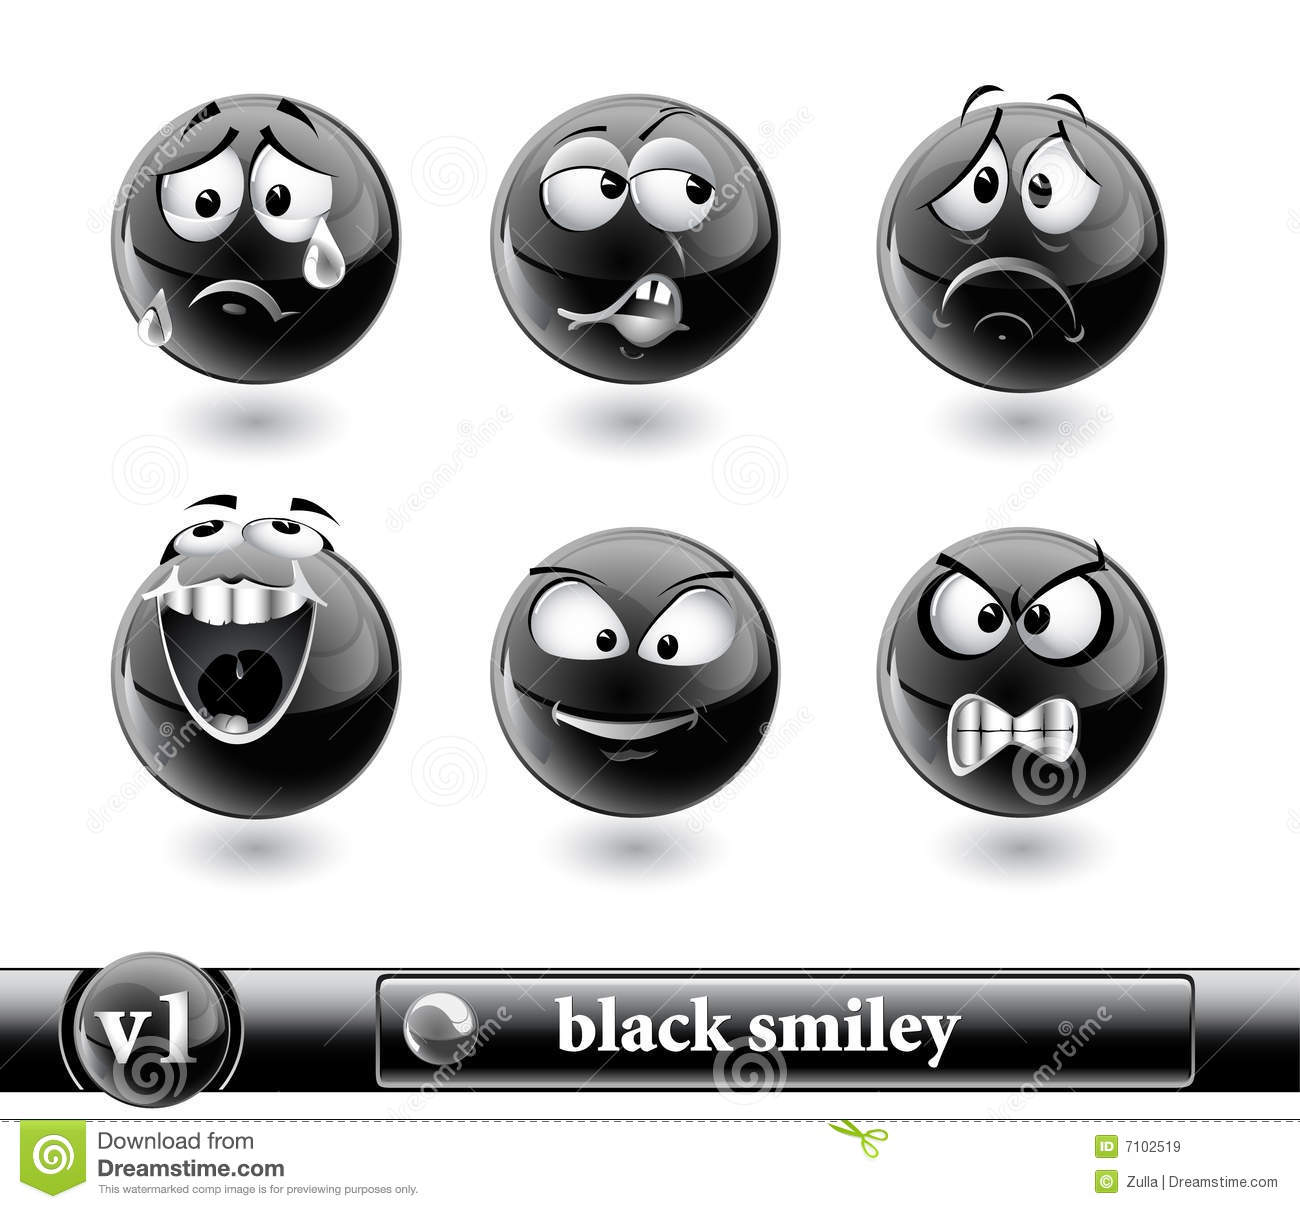 Smiley noir vol1 images libres de droits image 7102519 - Smiley noir et blanc ...